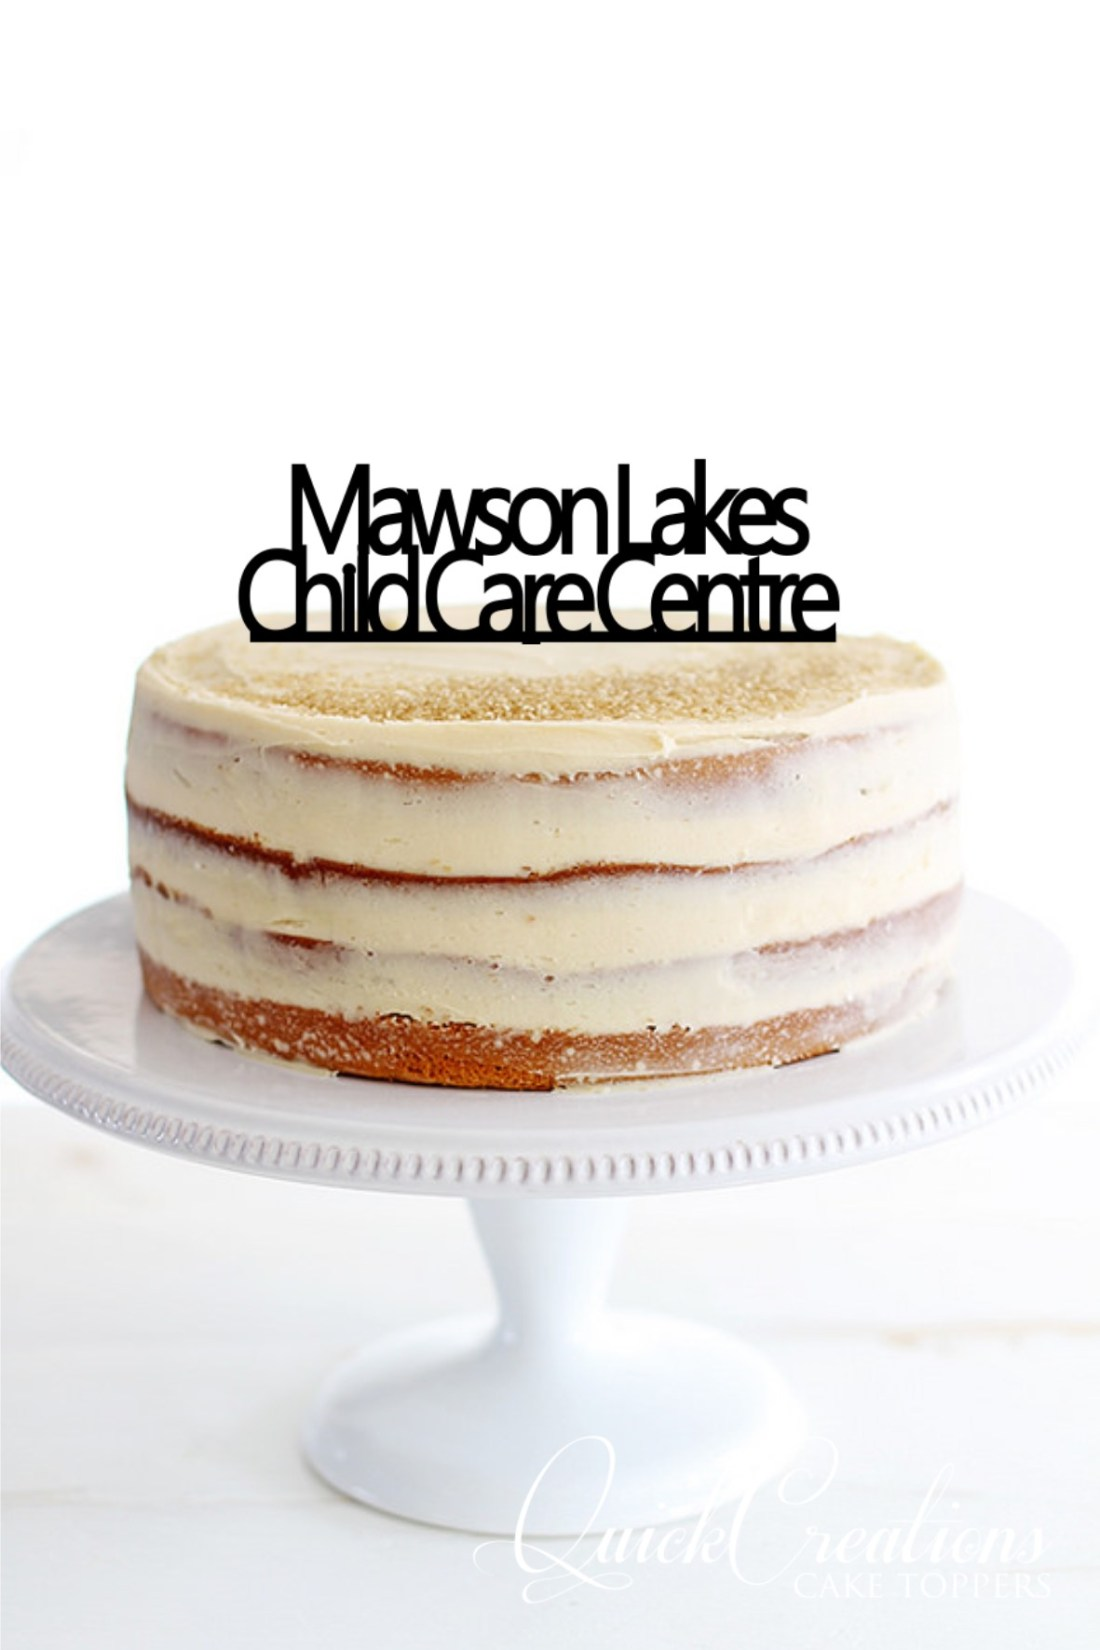 Quick Creations Cake Topper - Mawson Lakes Child Care Centre